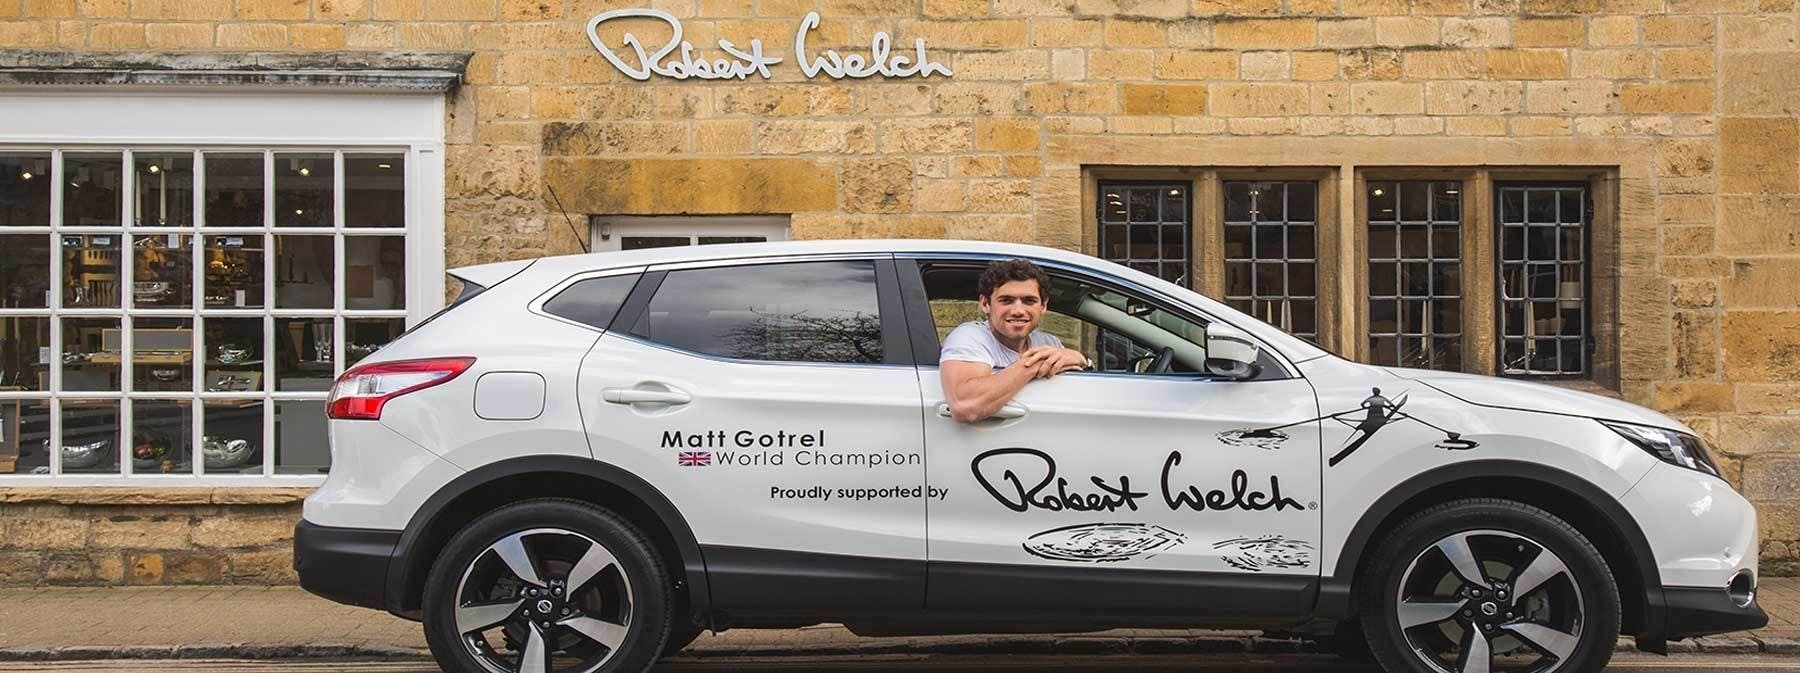 Robert Welch sponsor Matt Gotrel, world champion rower